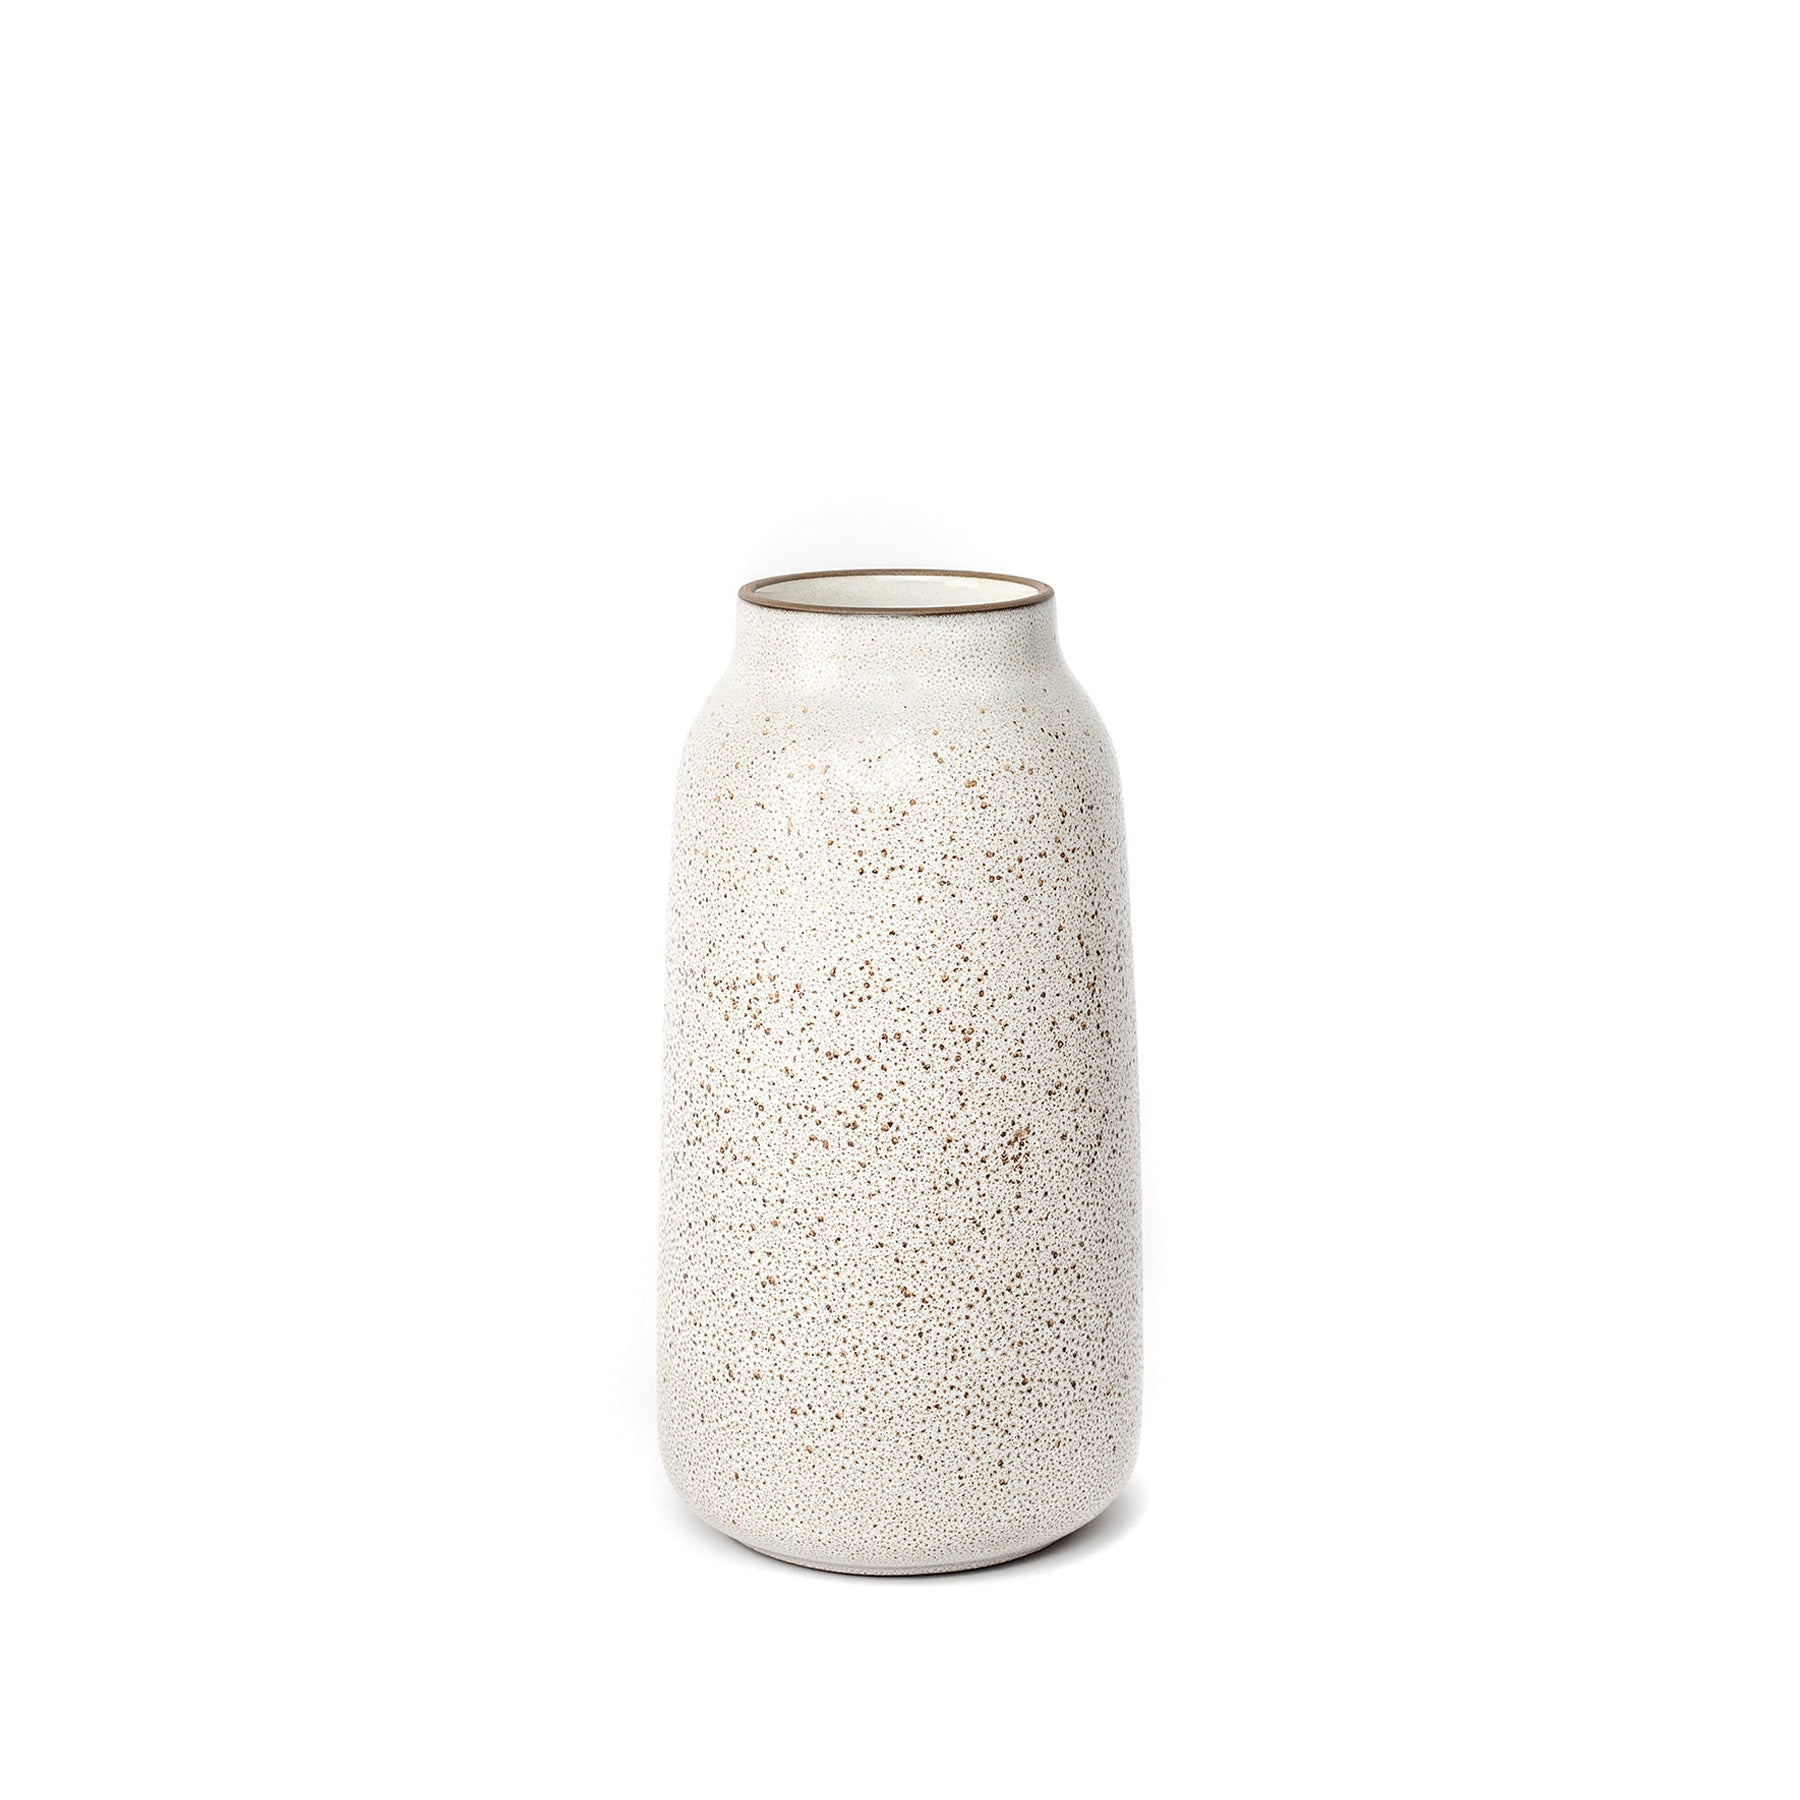 Tall Vase in Opaque White and Matte Brown Zoom Image 1